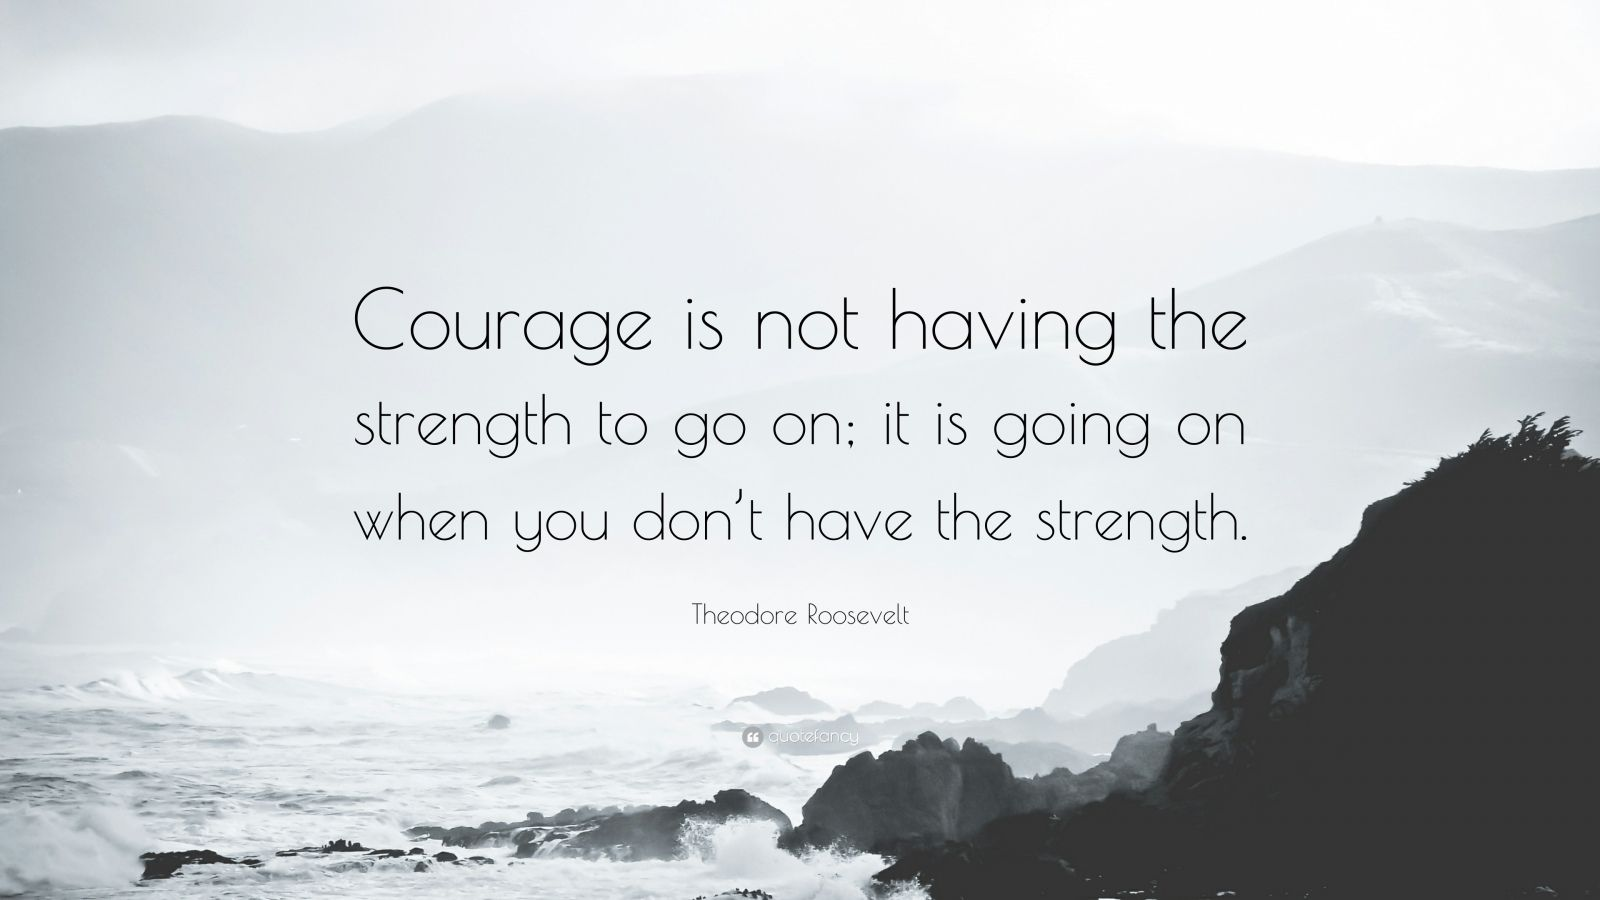 Theodore Roosevelt Quote Courage Is Not Having The Strength To Go On It Is Going On When You